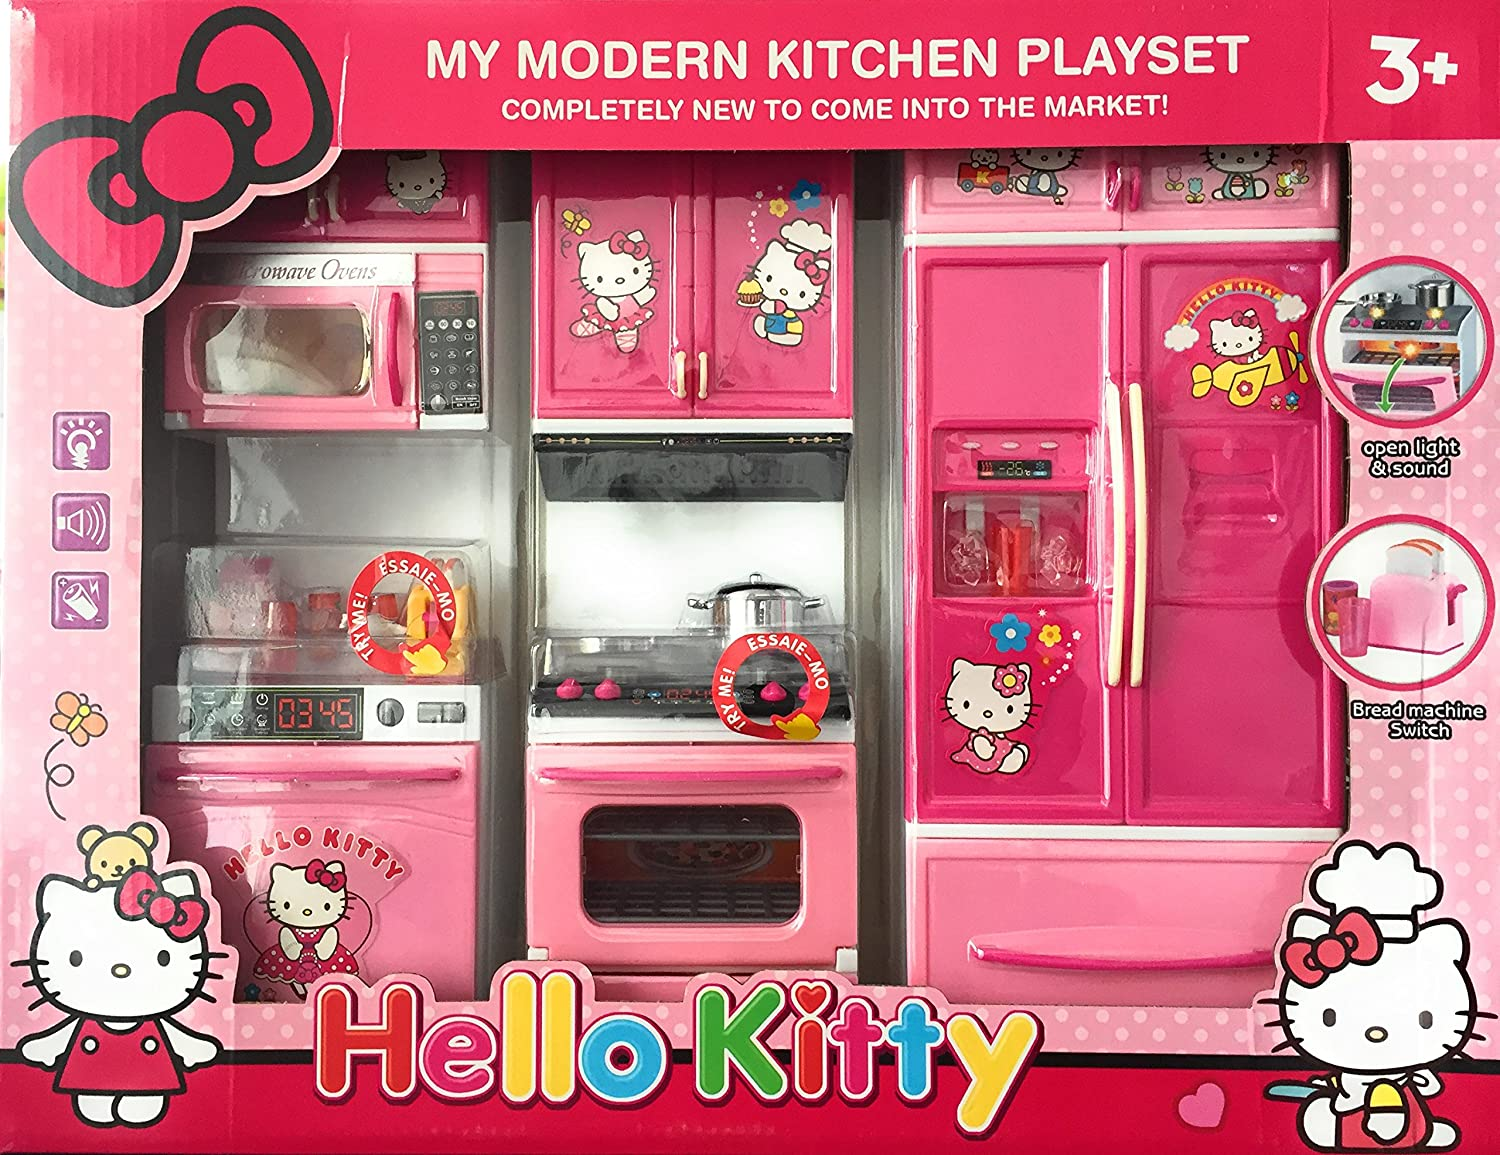 612c135f3 Buy BABY N TOYYS Hello Kitty Modern Kitchen Play Set with Refrigerator Cook  Top (Pink) Online at Low Prices in India - Amazon.in